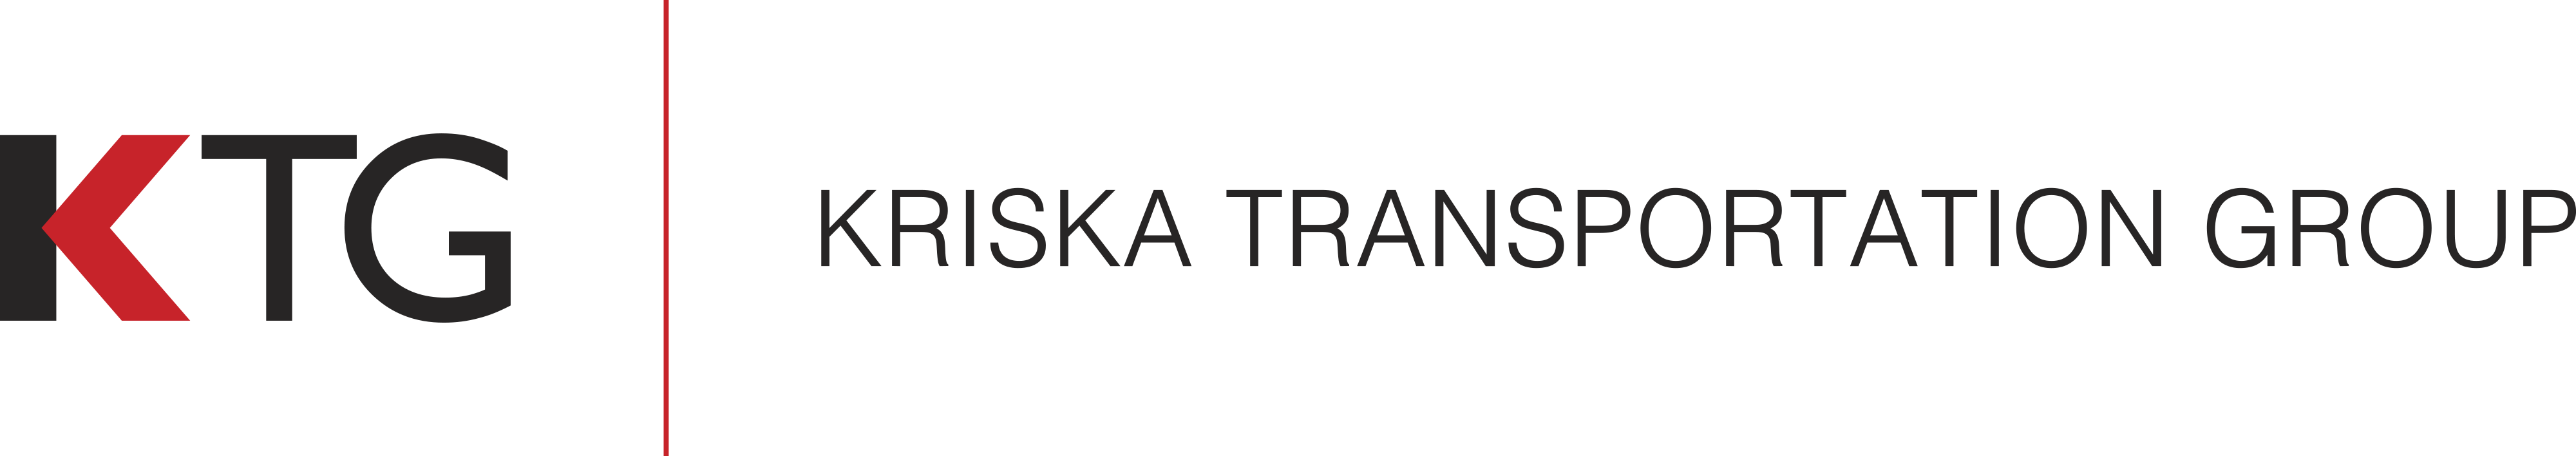 Kriska Transportation Group Logo